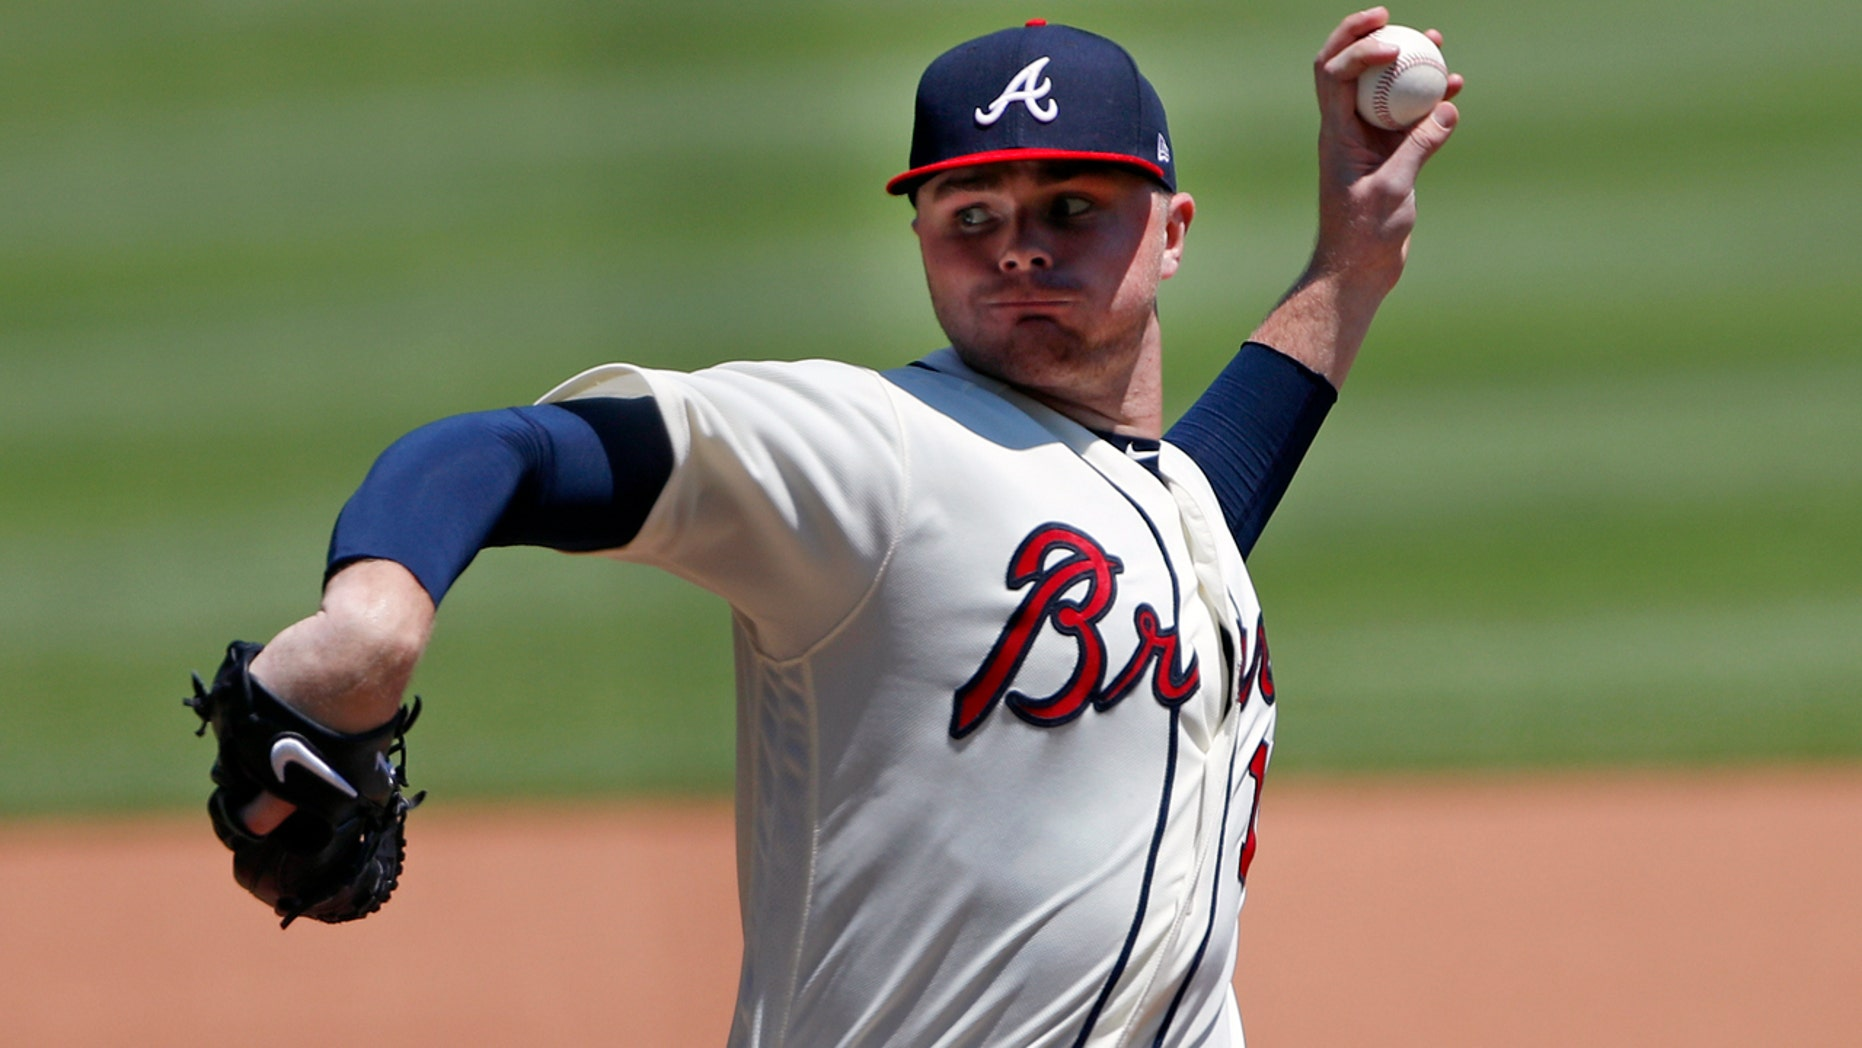 Atlanta Braves starting pitcher Sean Newcomb works in the fourth inning of a baseball game against the Los Angeles Dodgers, Sunday, July 29, 2018, in Atlanta. (AP Photo/John Bazemore)